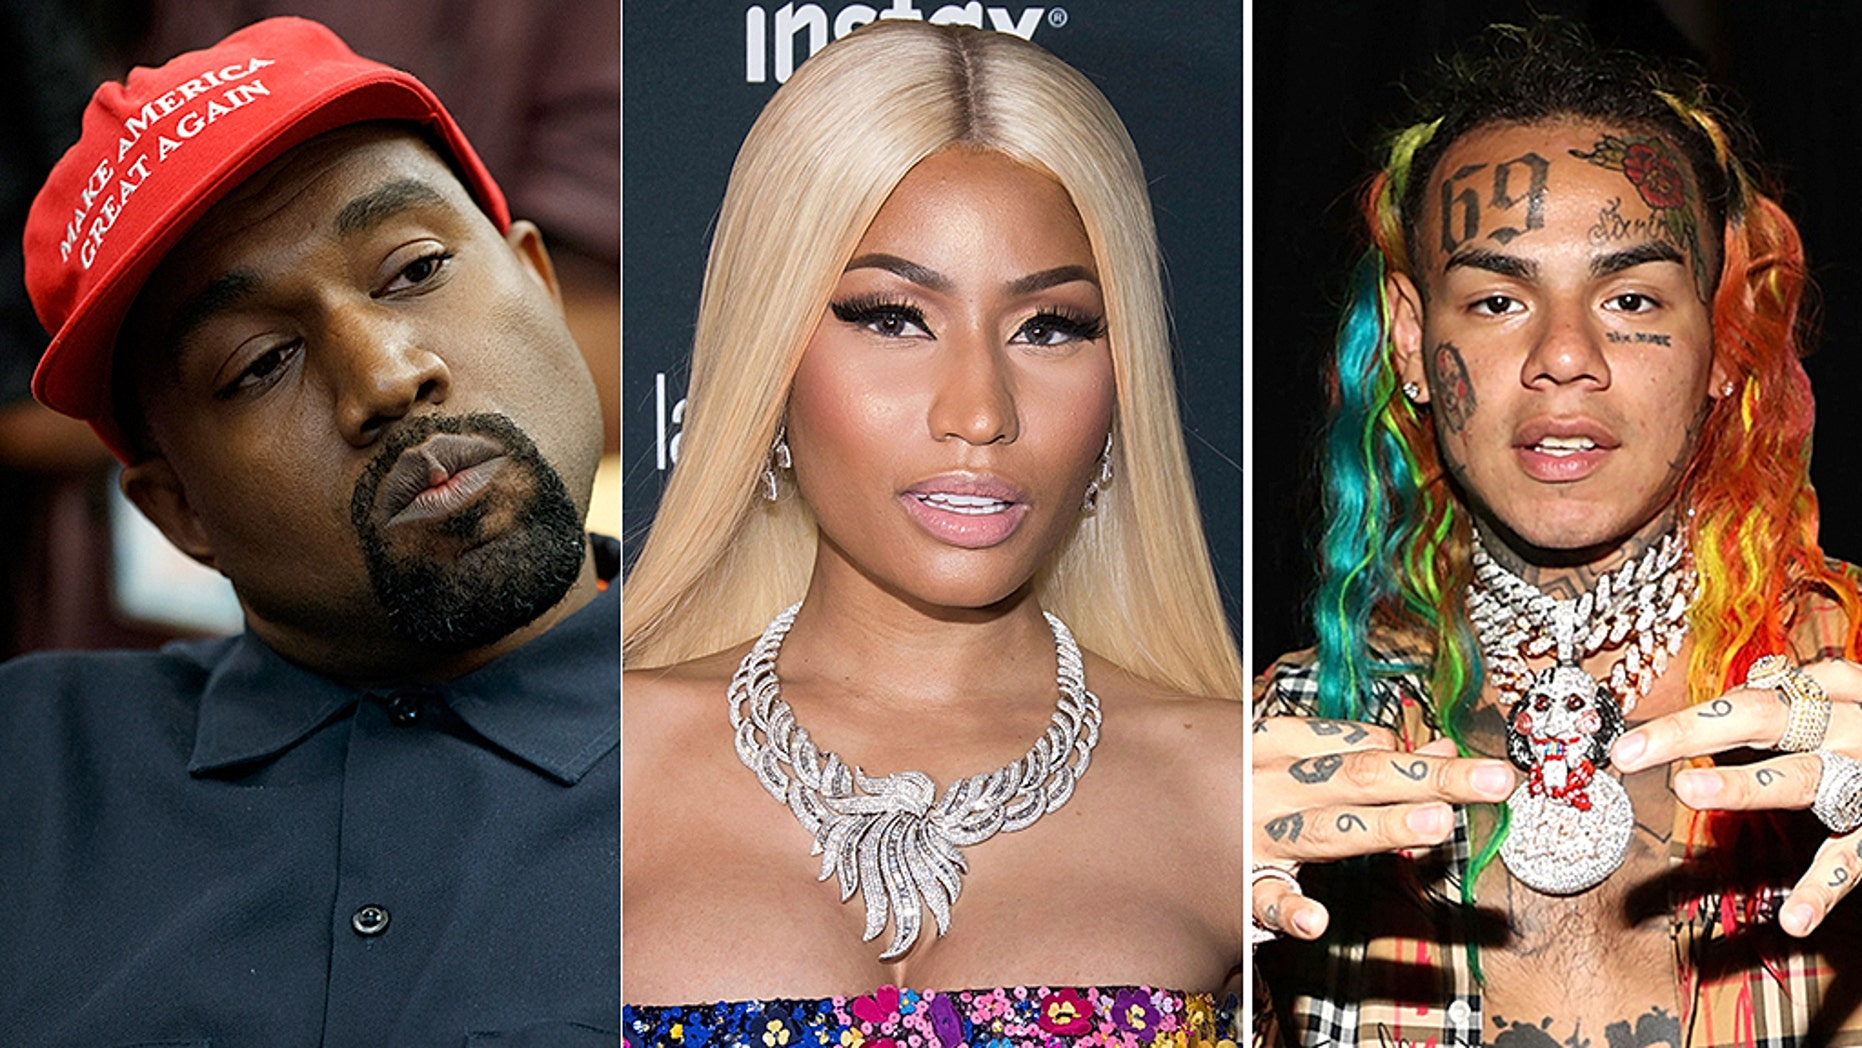 Tekashi 6ix9ine, Kanye West & Nicki Minaj Targeted In Dramatic